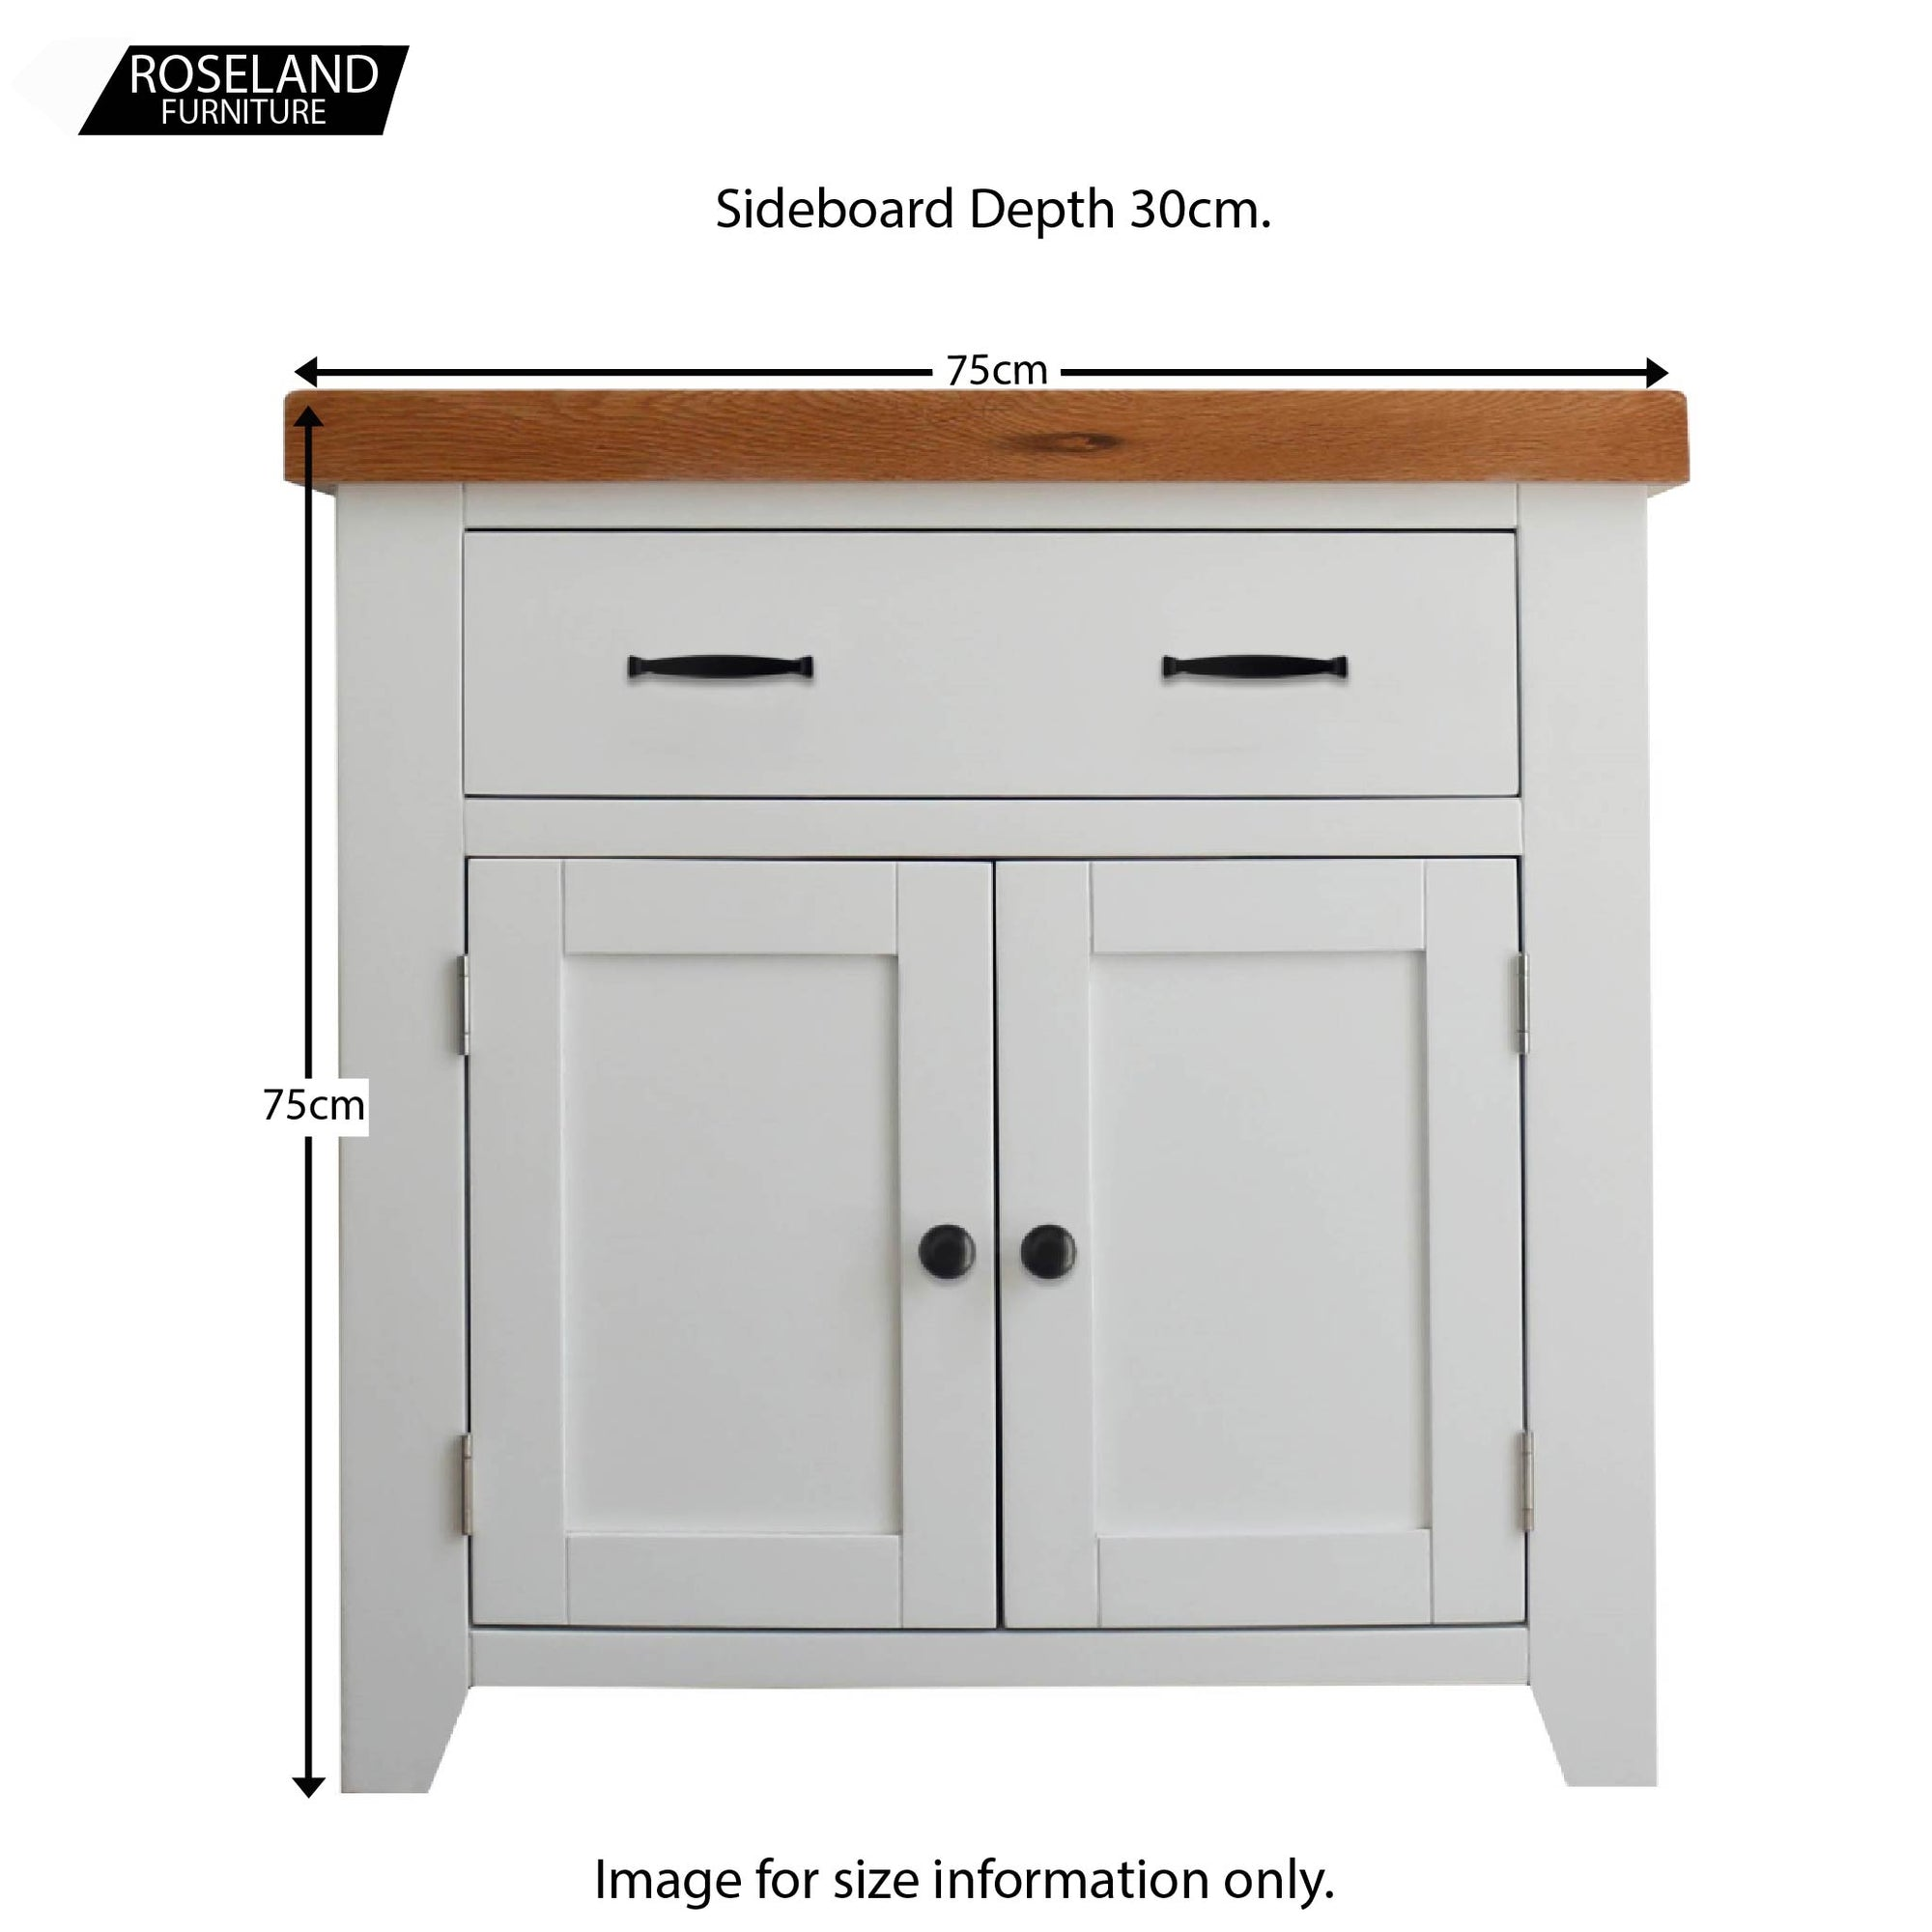 Living Room or Hallway Fully Assembled RoselandFurniture Chatsworth Blue Small Sideboard Cabinet with Drawers Contemporary Painted Solid Wood 2 Door Storage Cupboard with Oak Top for Dining Room